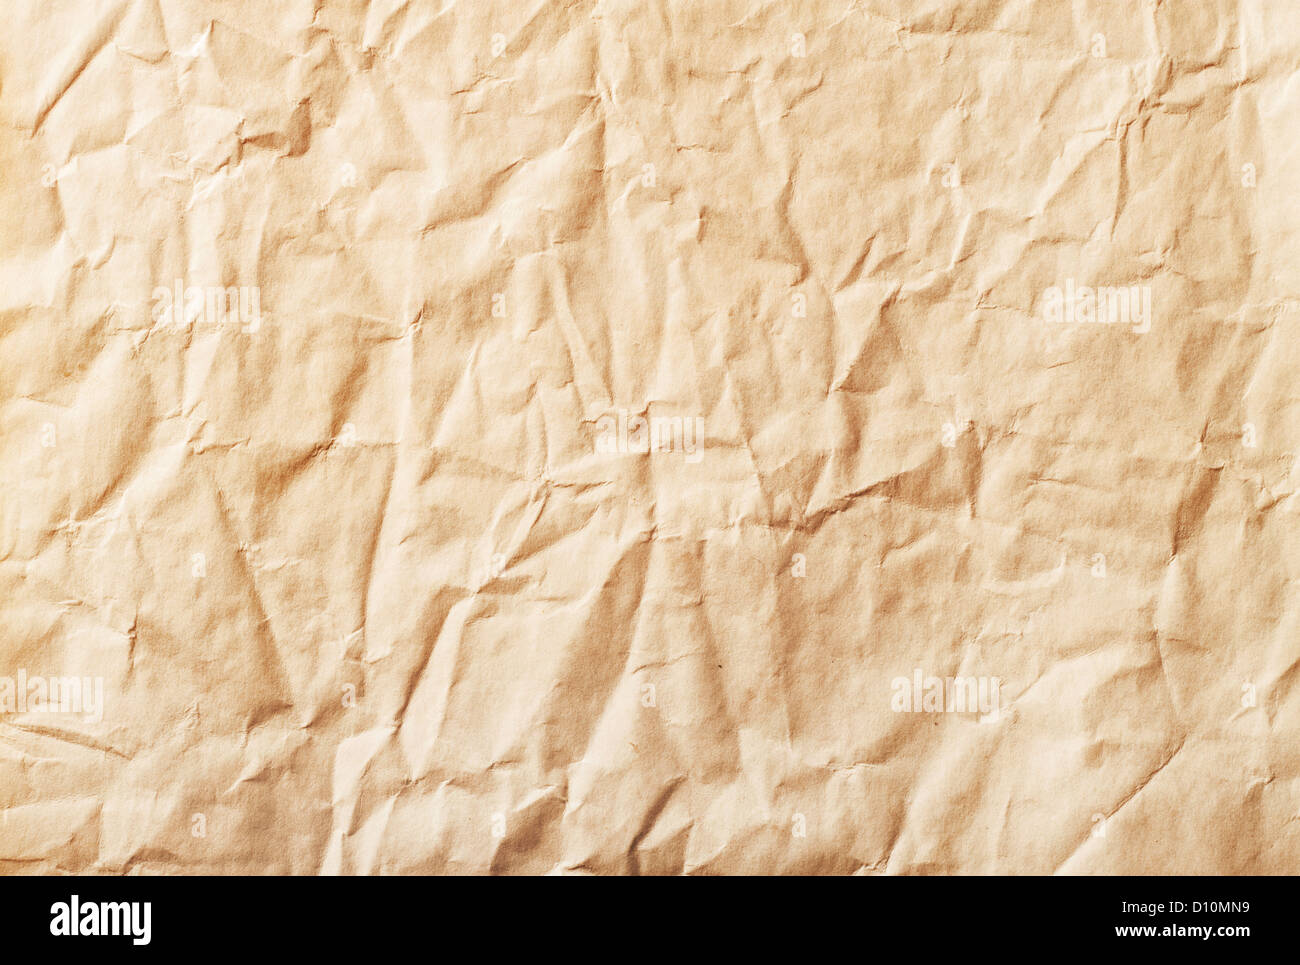 Paper texture - brown paper sheet - Stock Image